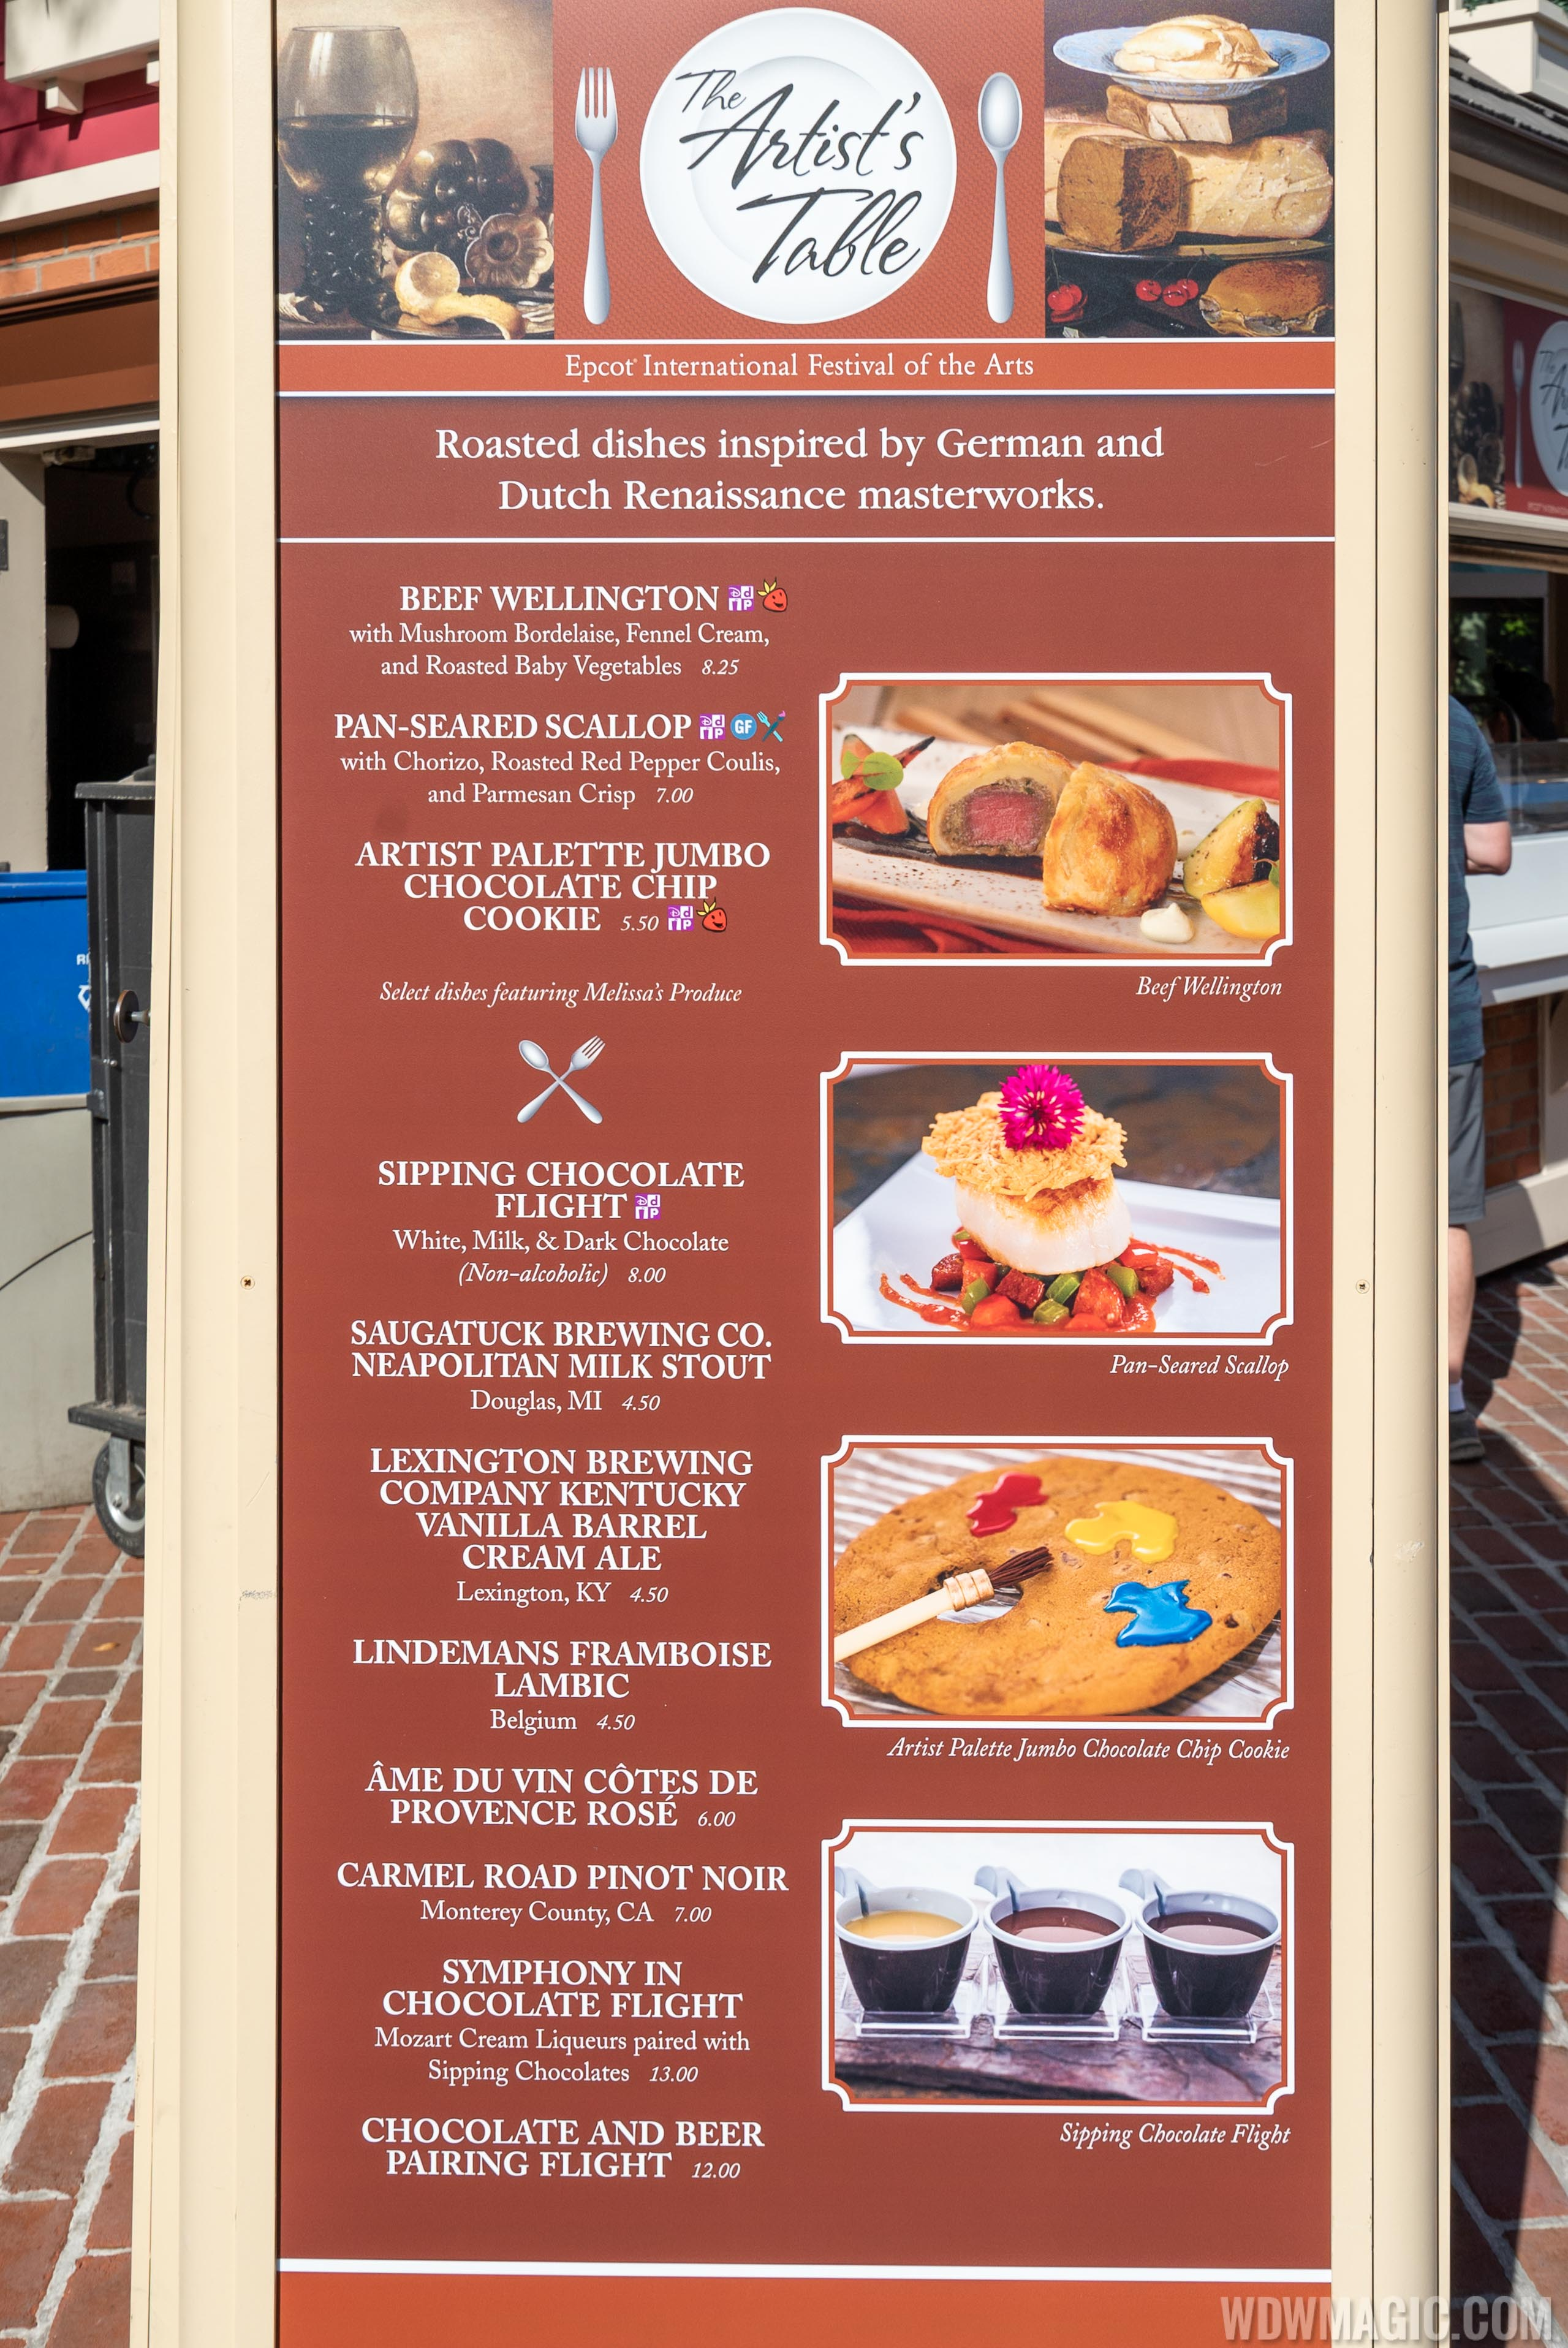 2020 Epcot Festival of the Arts Food Studio kiosks and menus